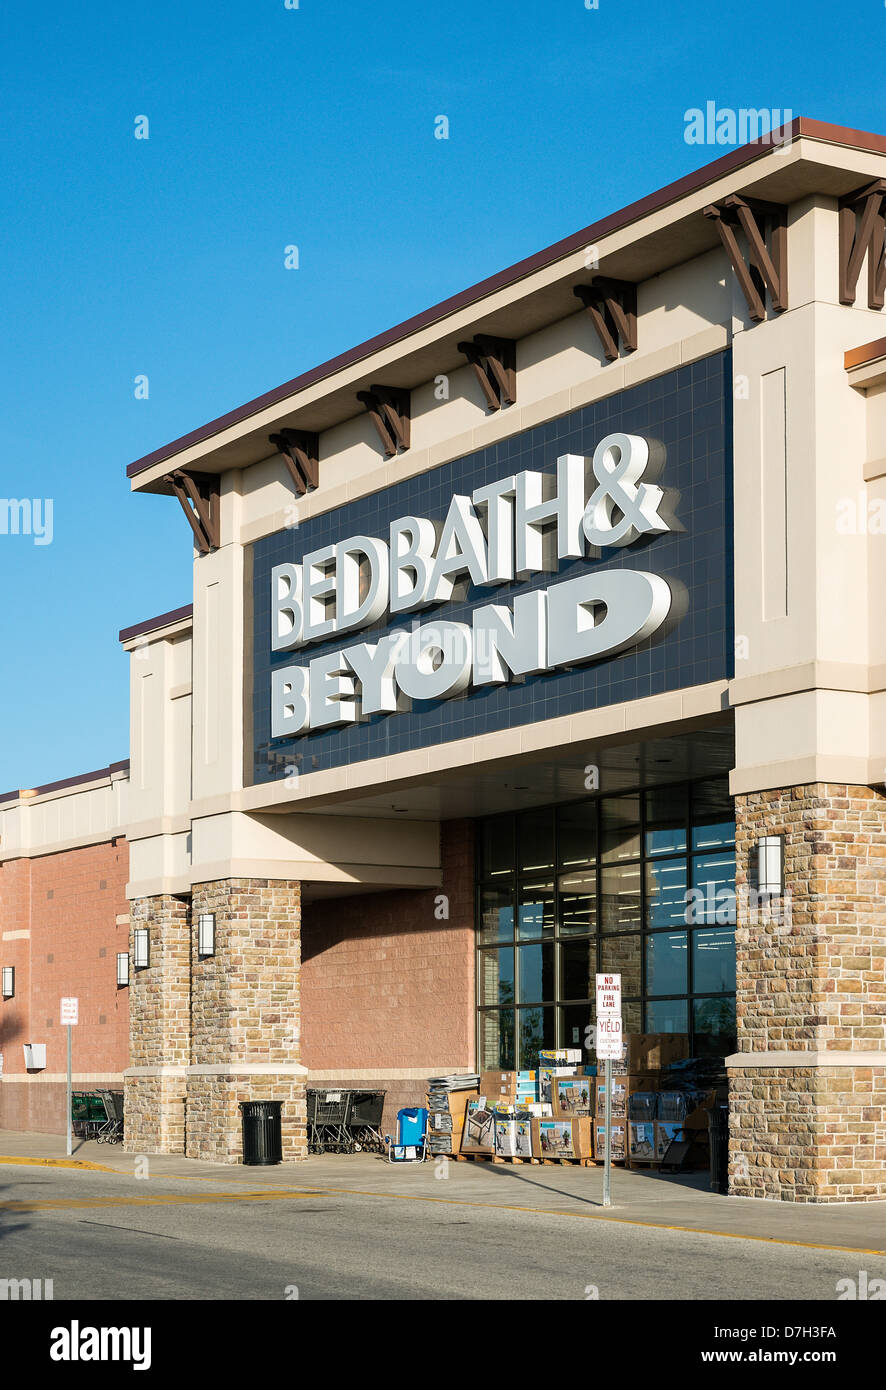 Bed, Bath and Beyond store, - Stock Image